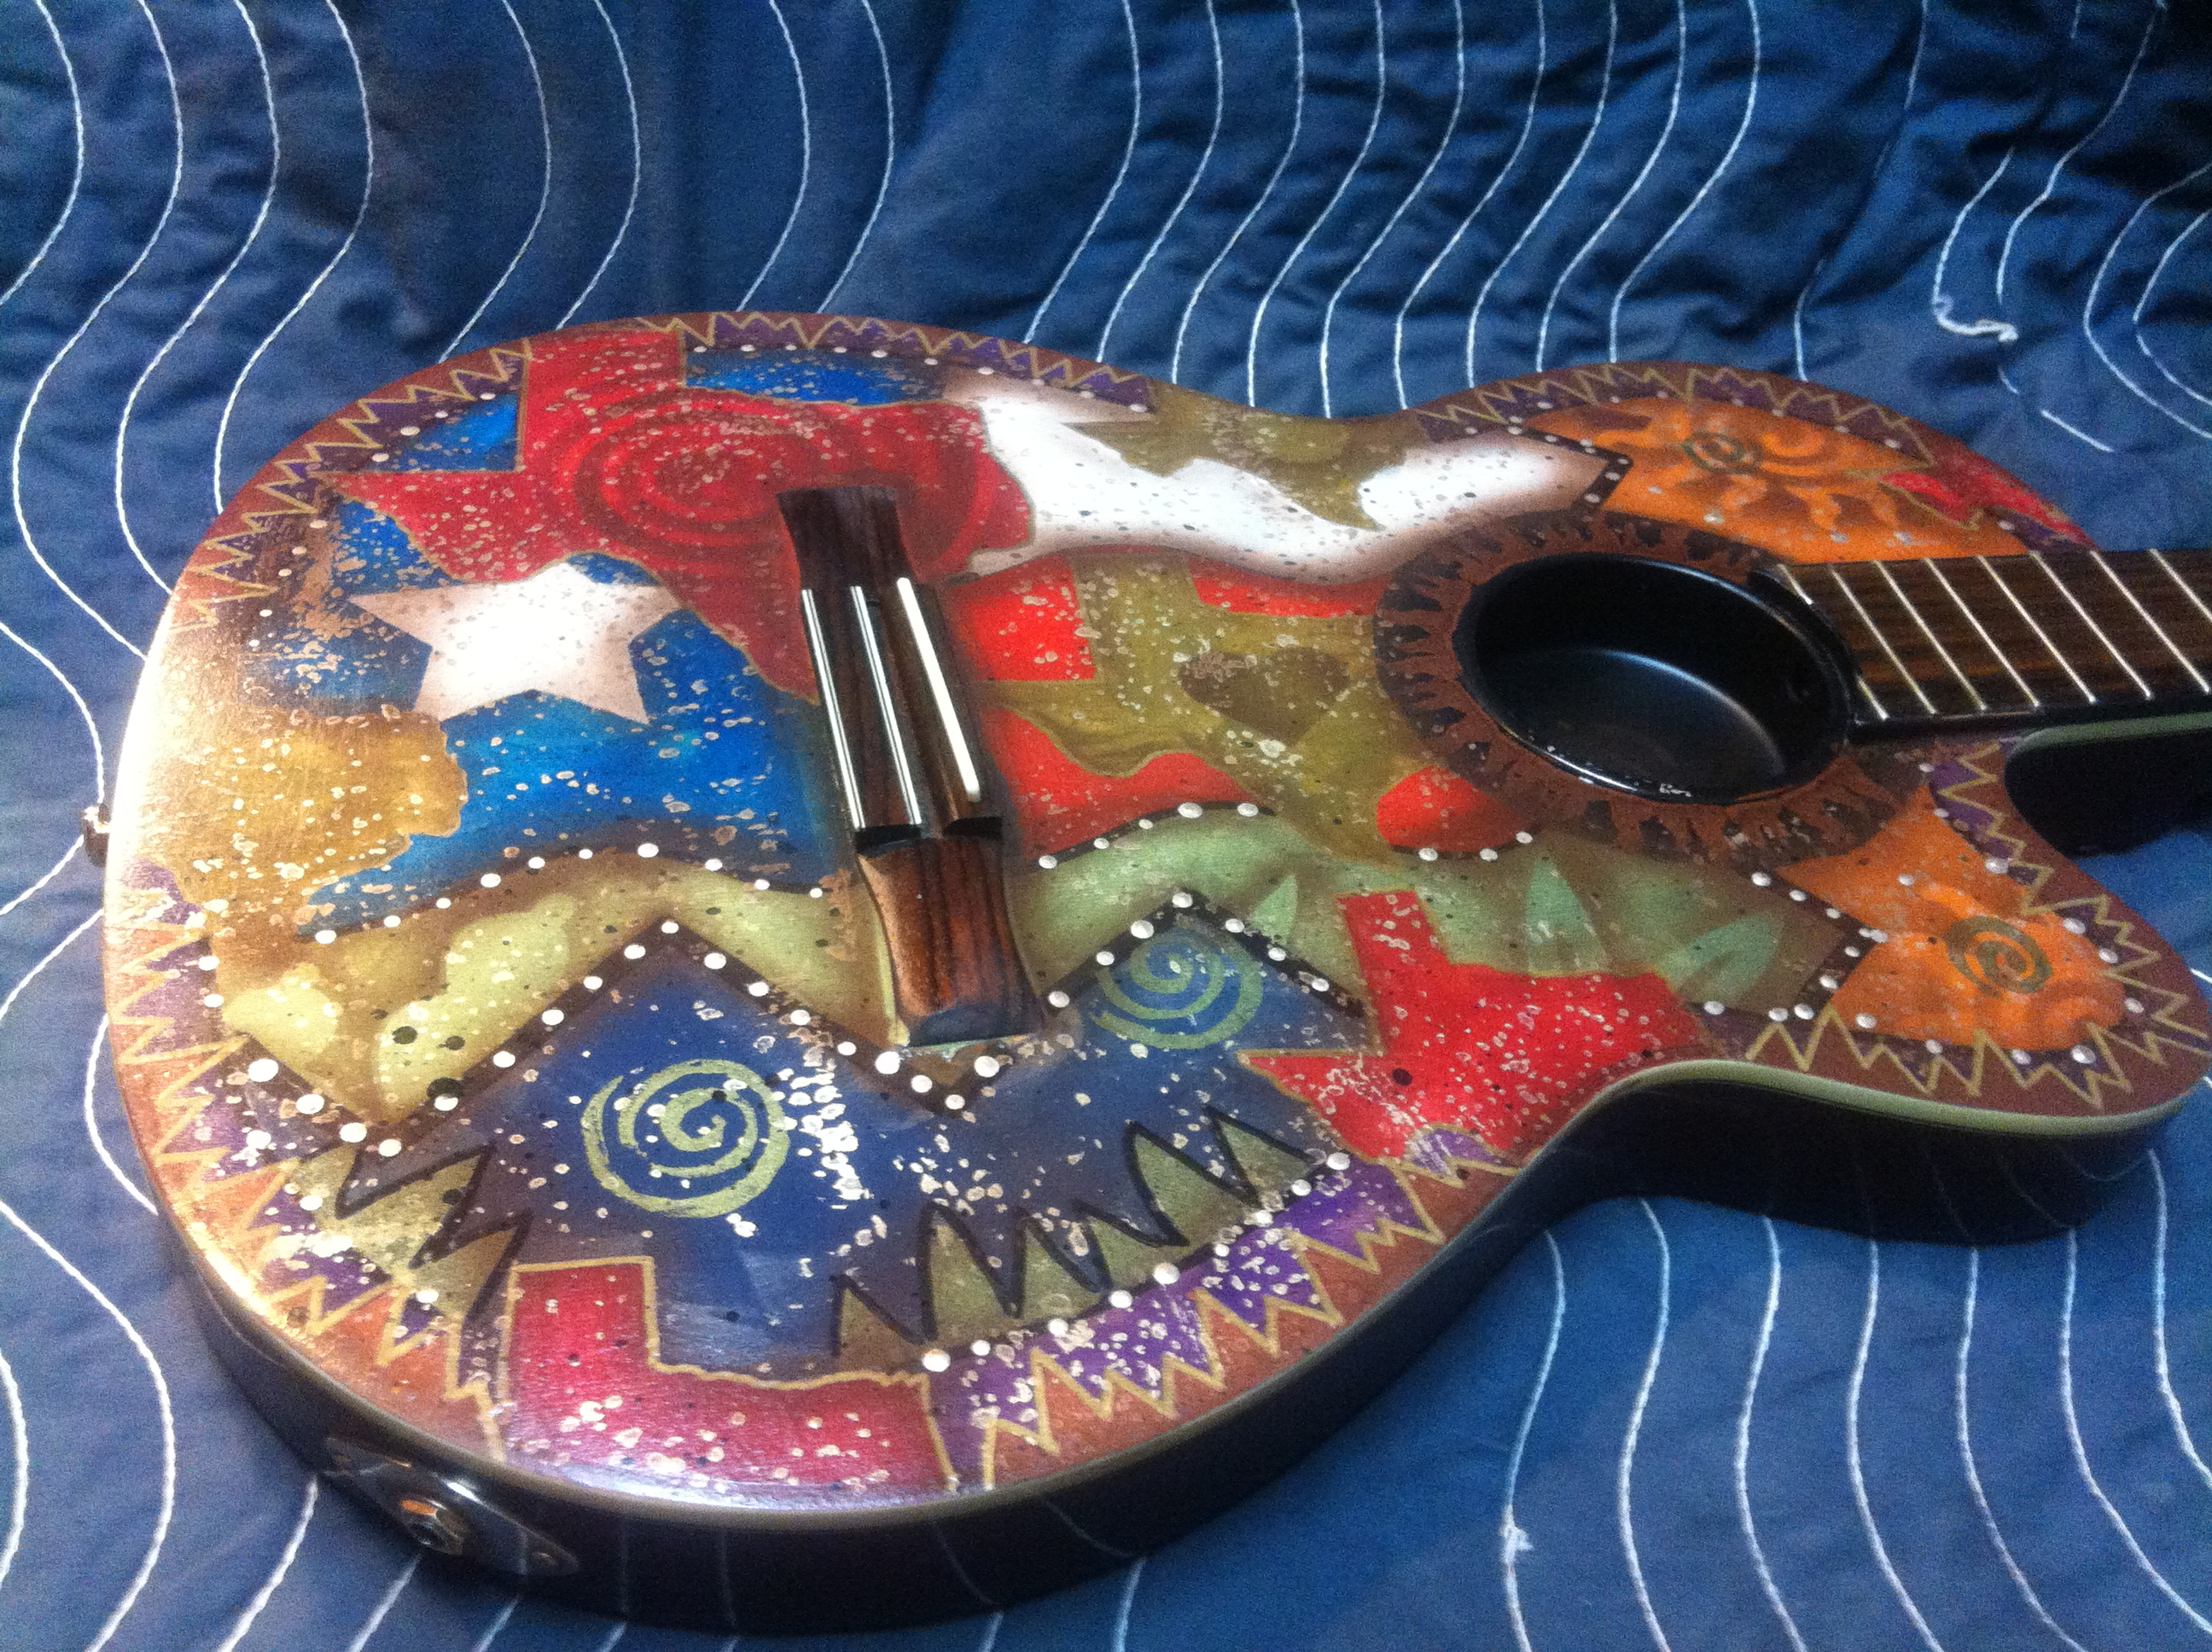 Tommy Alverson's custom painted guitar.